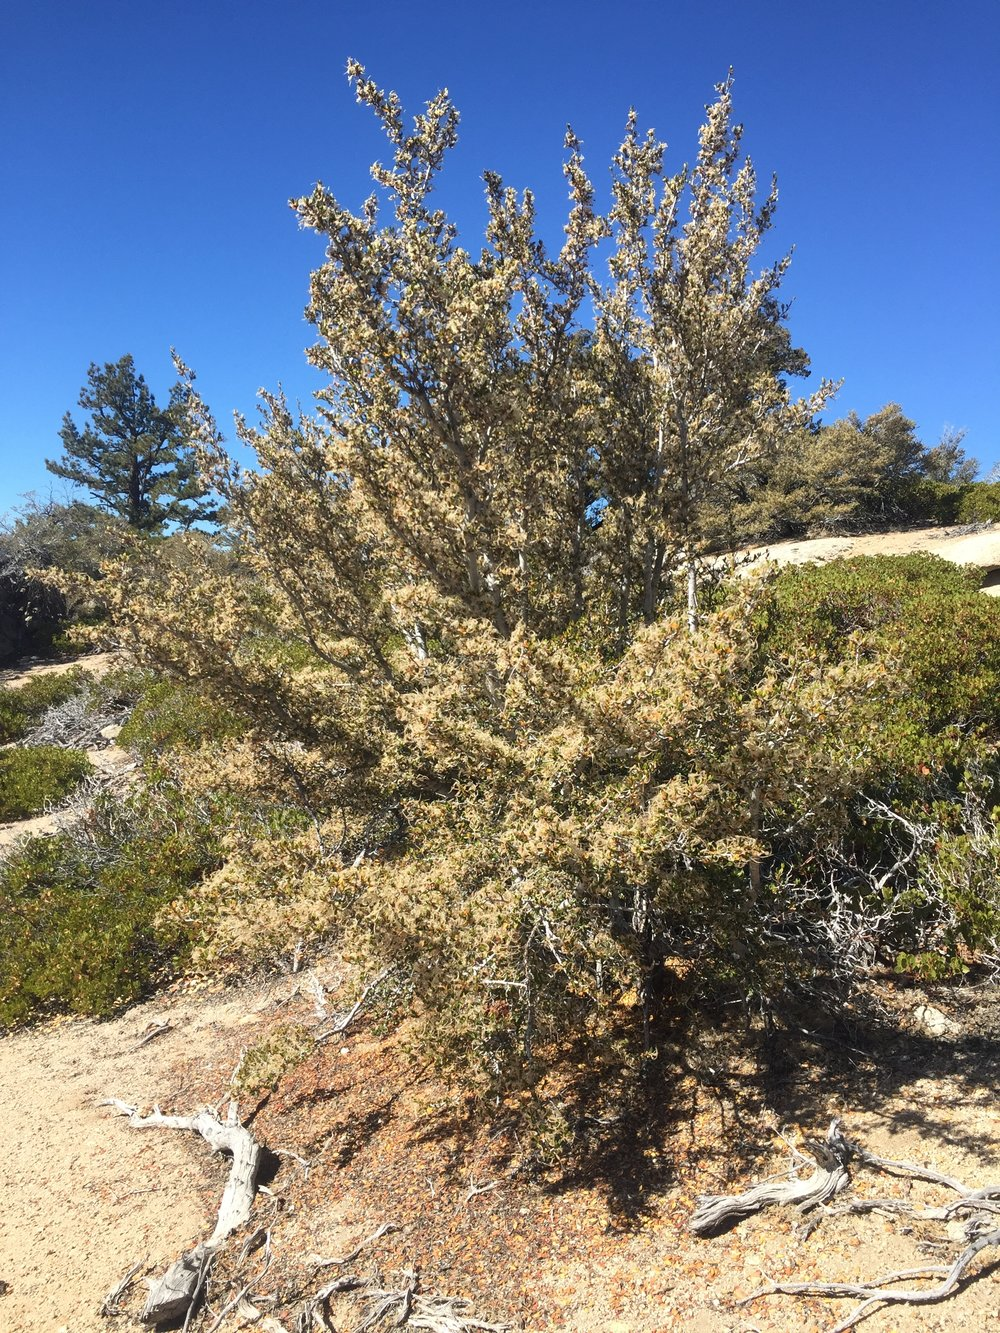 Mountain mahogany and manzanita in the lower reaches of the Golden Trout Wilderness